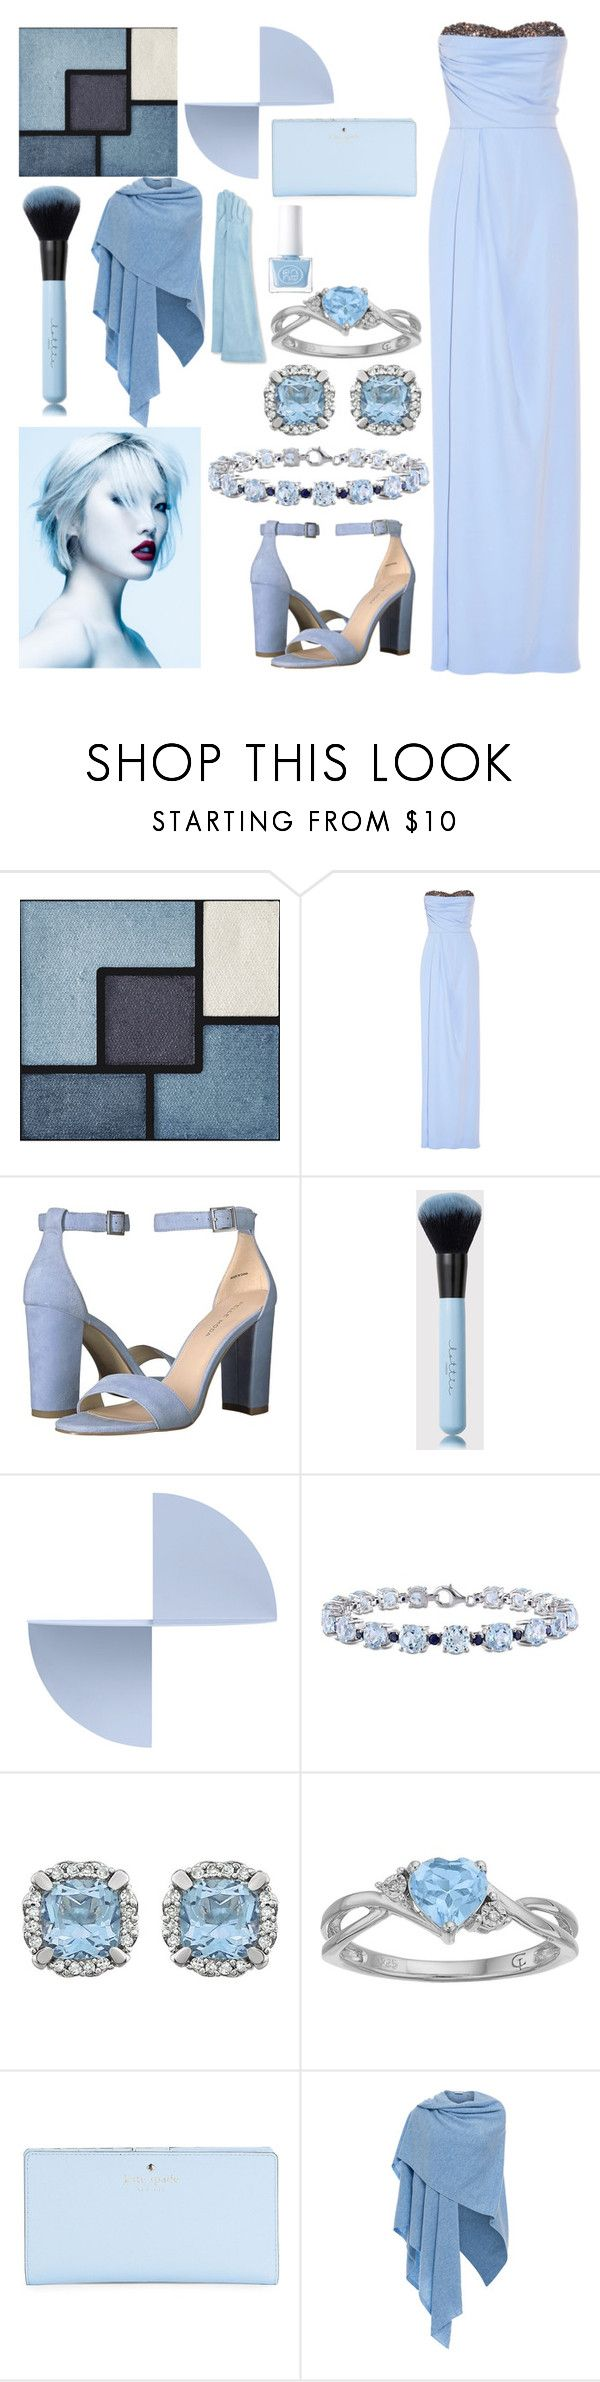 """Pretty Powder"" by jayme-becker ❤ liked on Polyvore featuring Yves Saint Laurent, Notte by Marchesa, Pelle Moda, HAY, Miadora, Kate Spade, Kinross and Guanti Giglio Fiorentino"